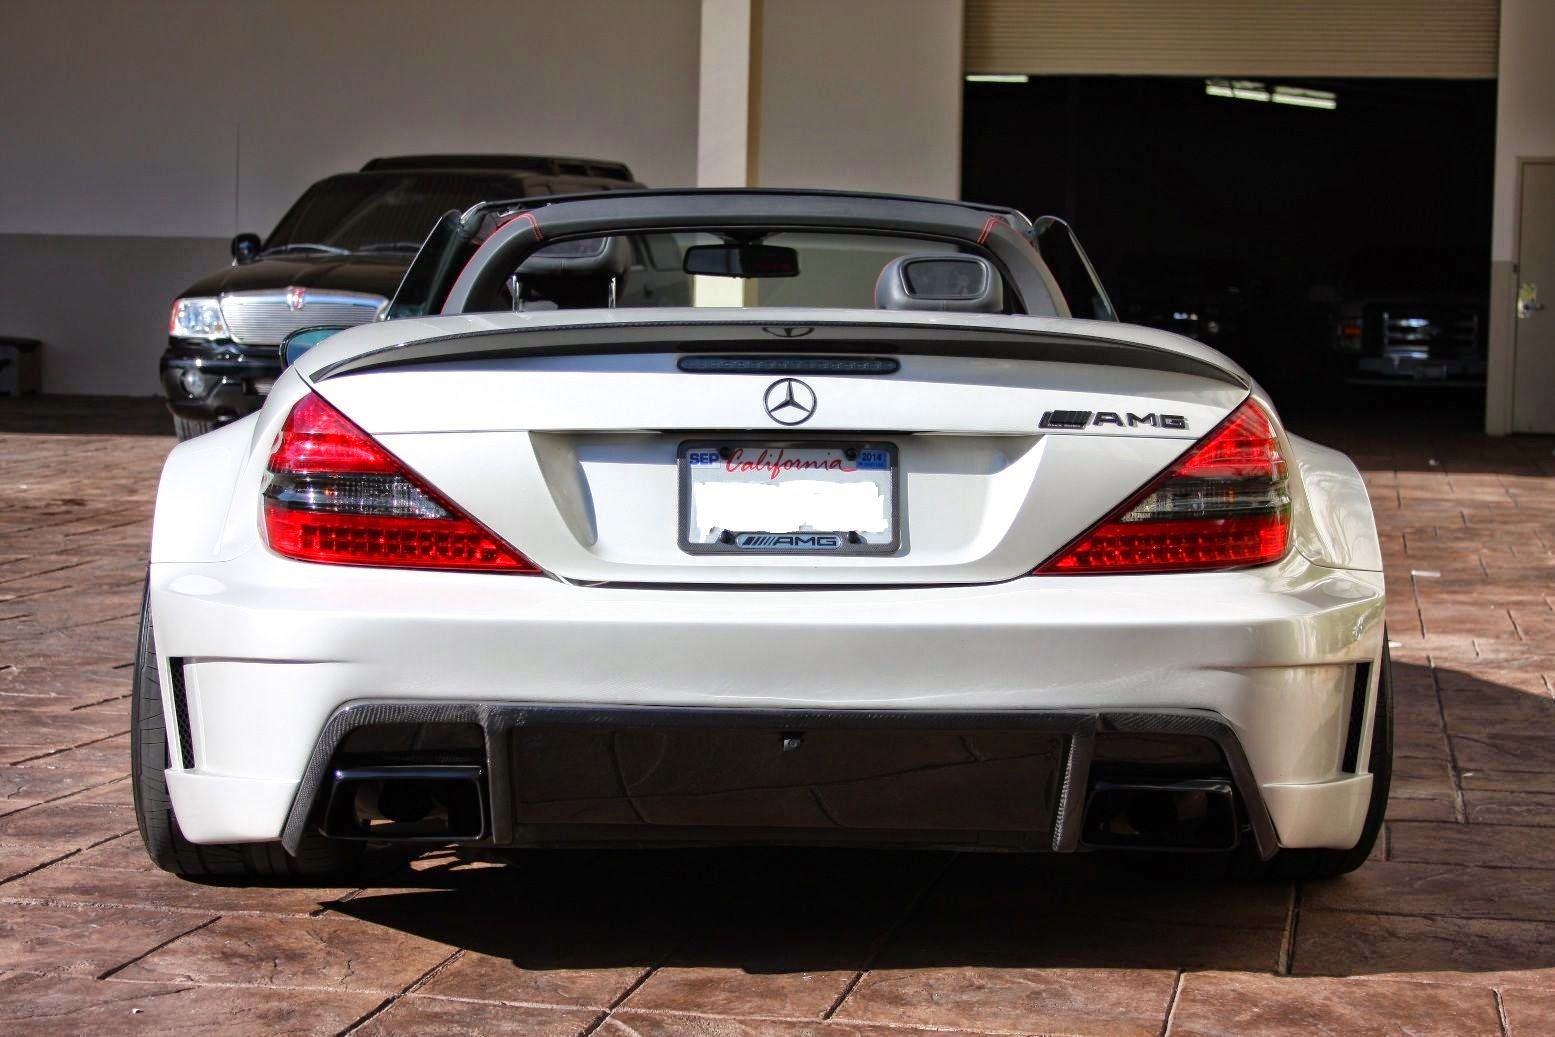 Mercedes benz r230 sl55 amg widebody benztuning for Mercedes benz sl55 amg